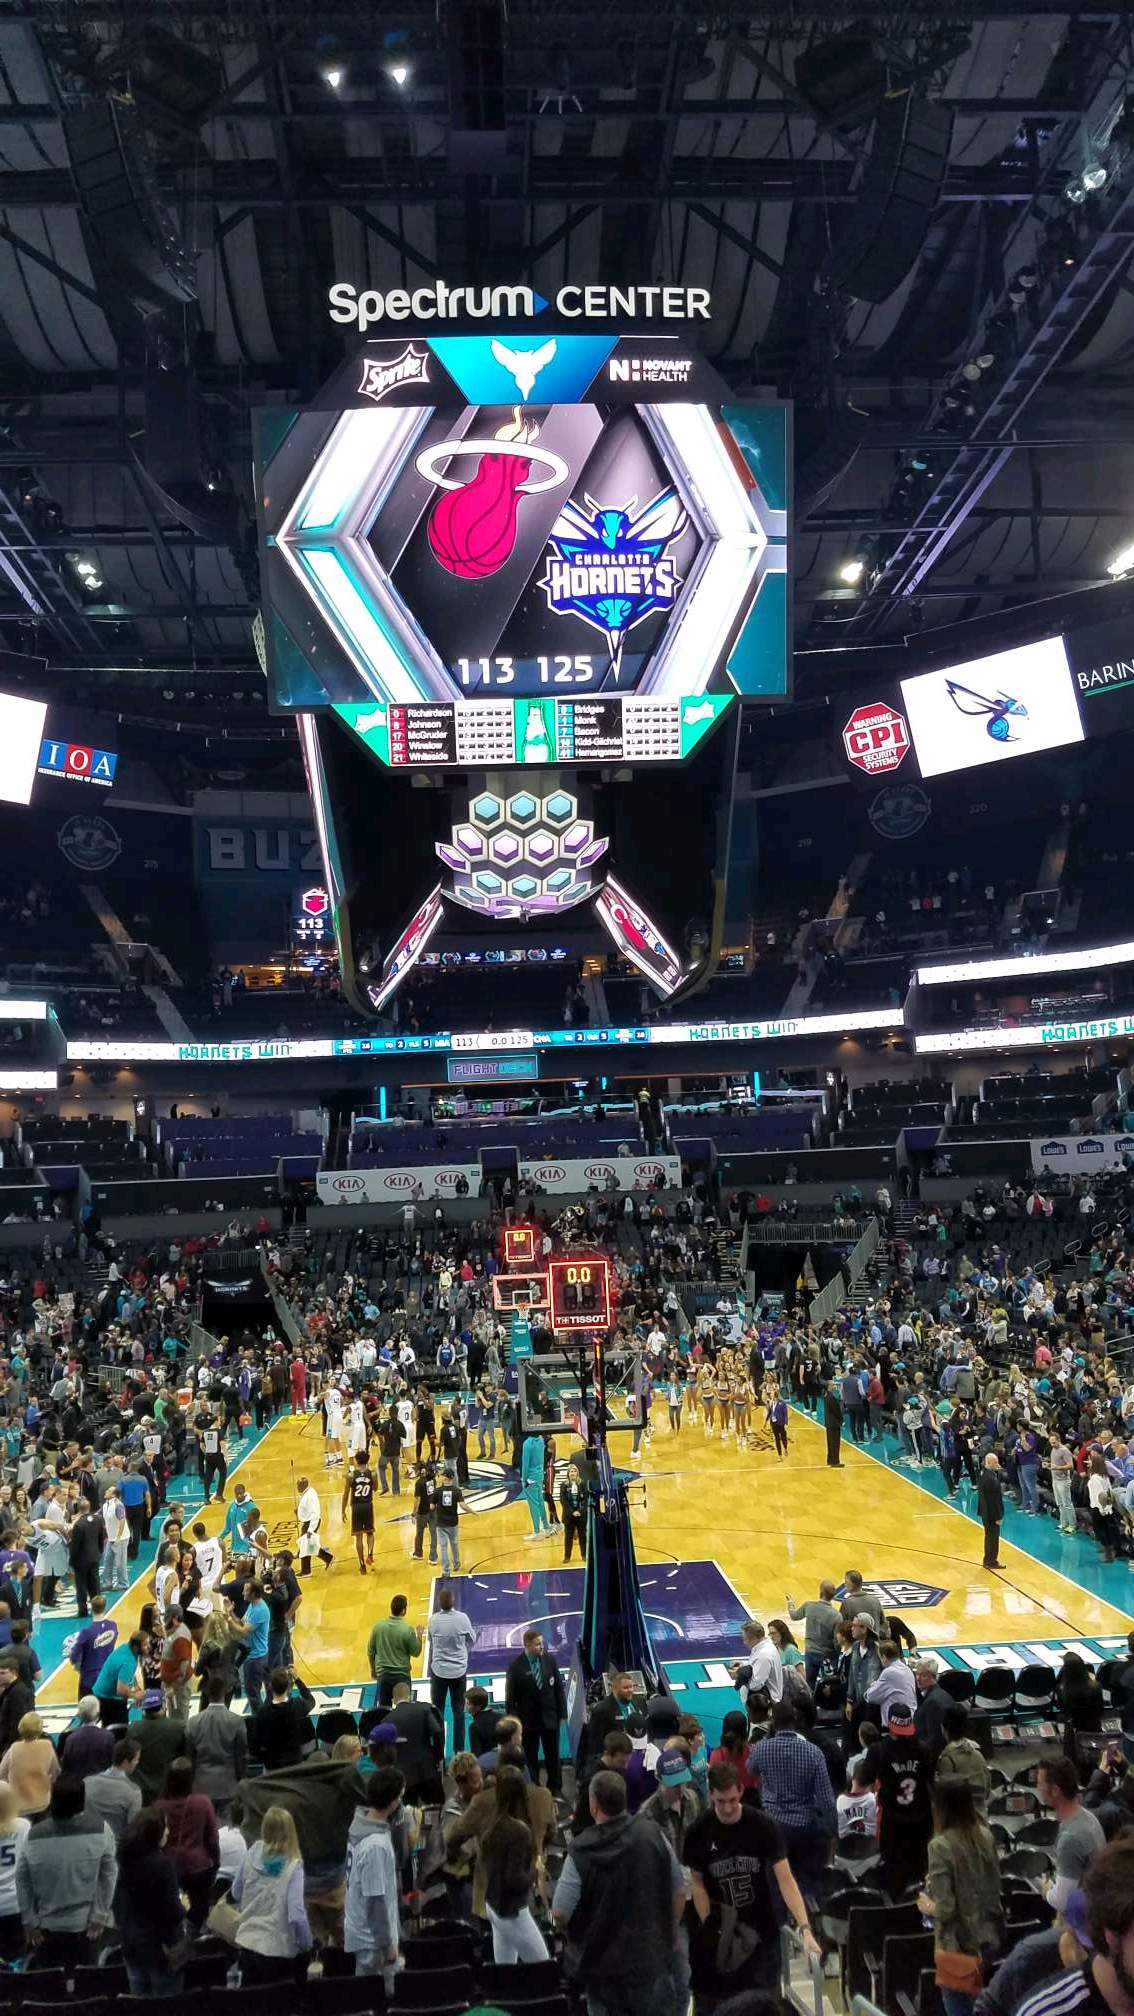 Spectrum Center Section 101 Row P Seat 4